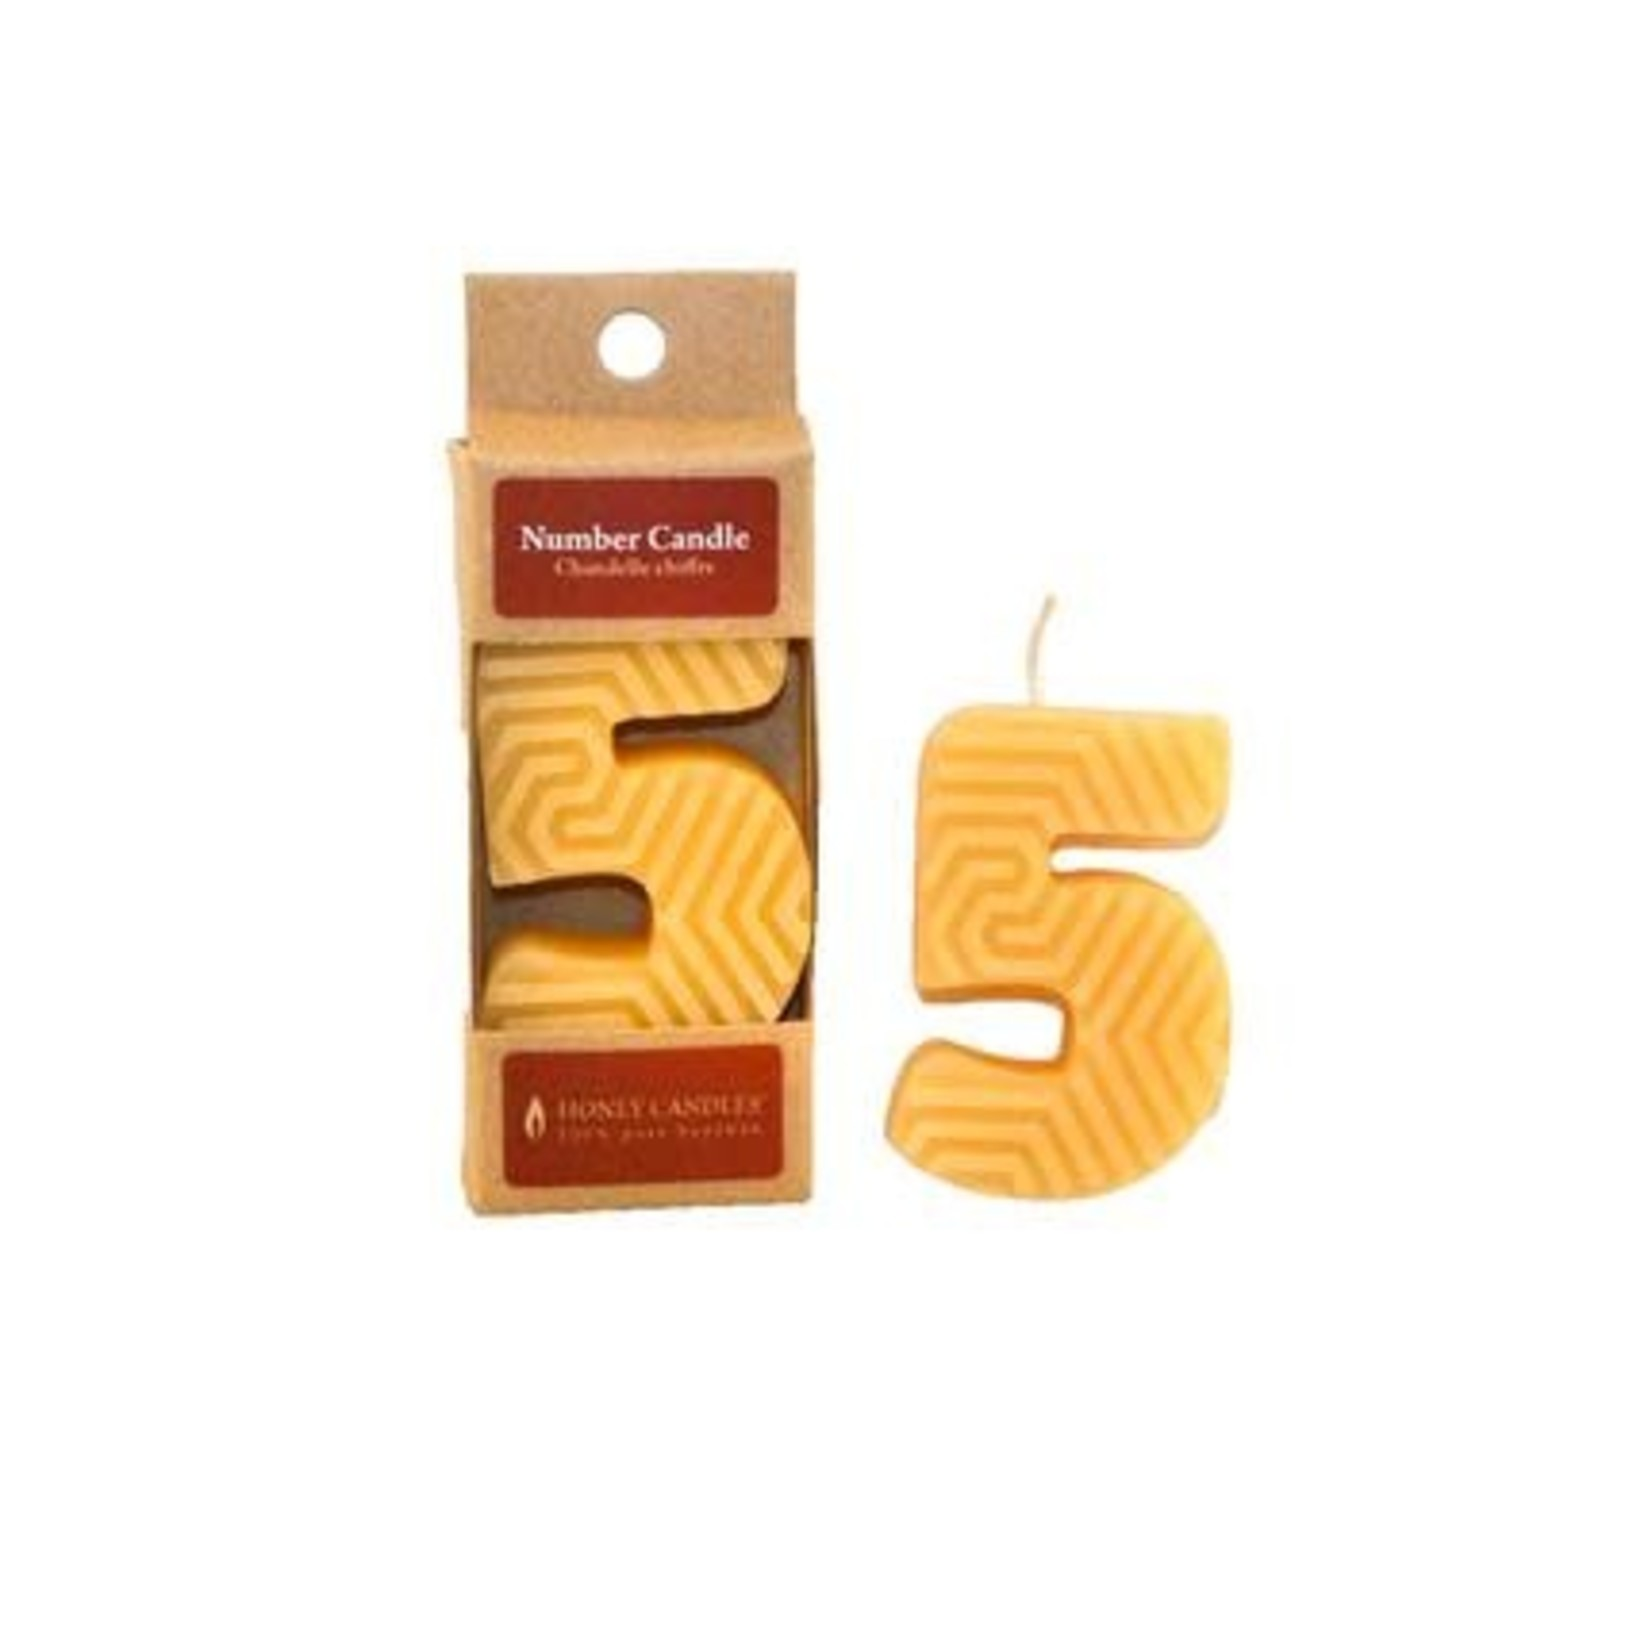 HONEY CANDLES NUMBER 5 BEESWAX CANDLE